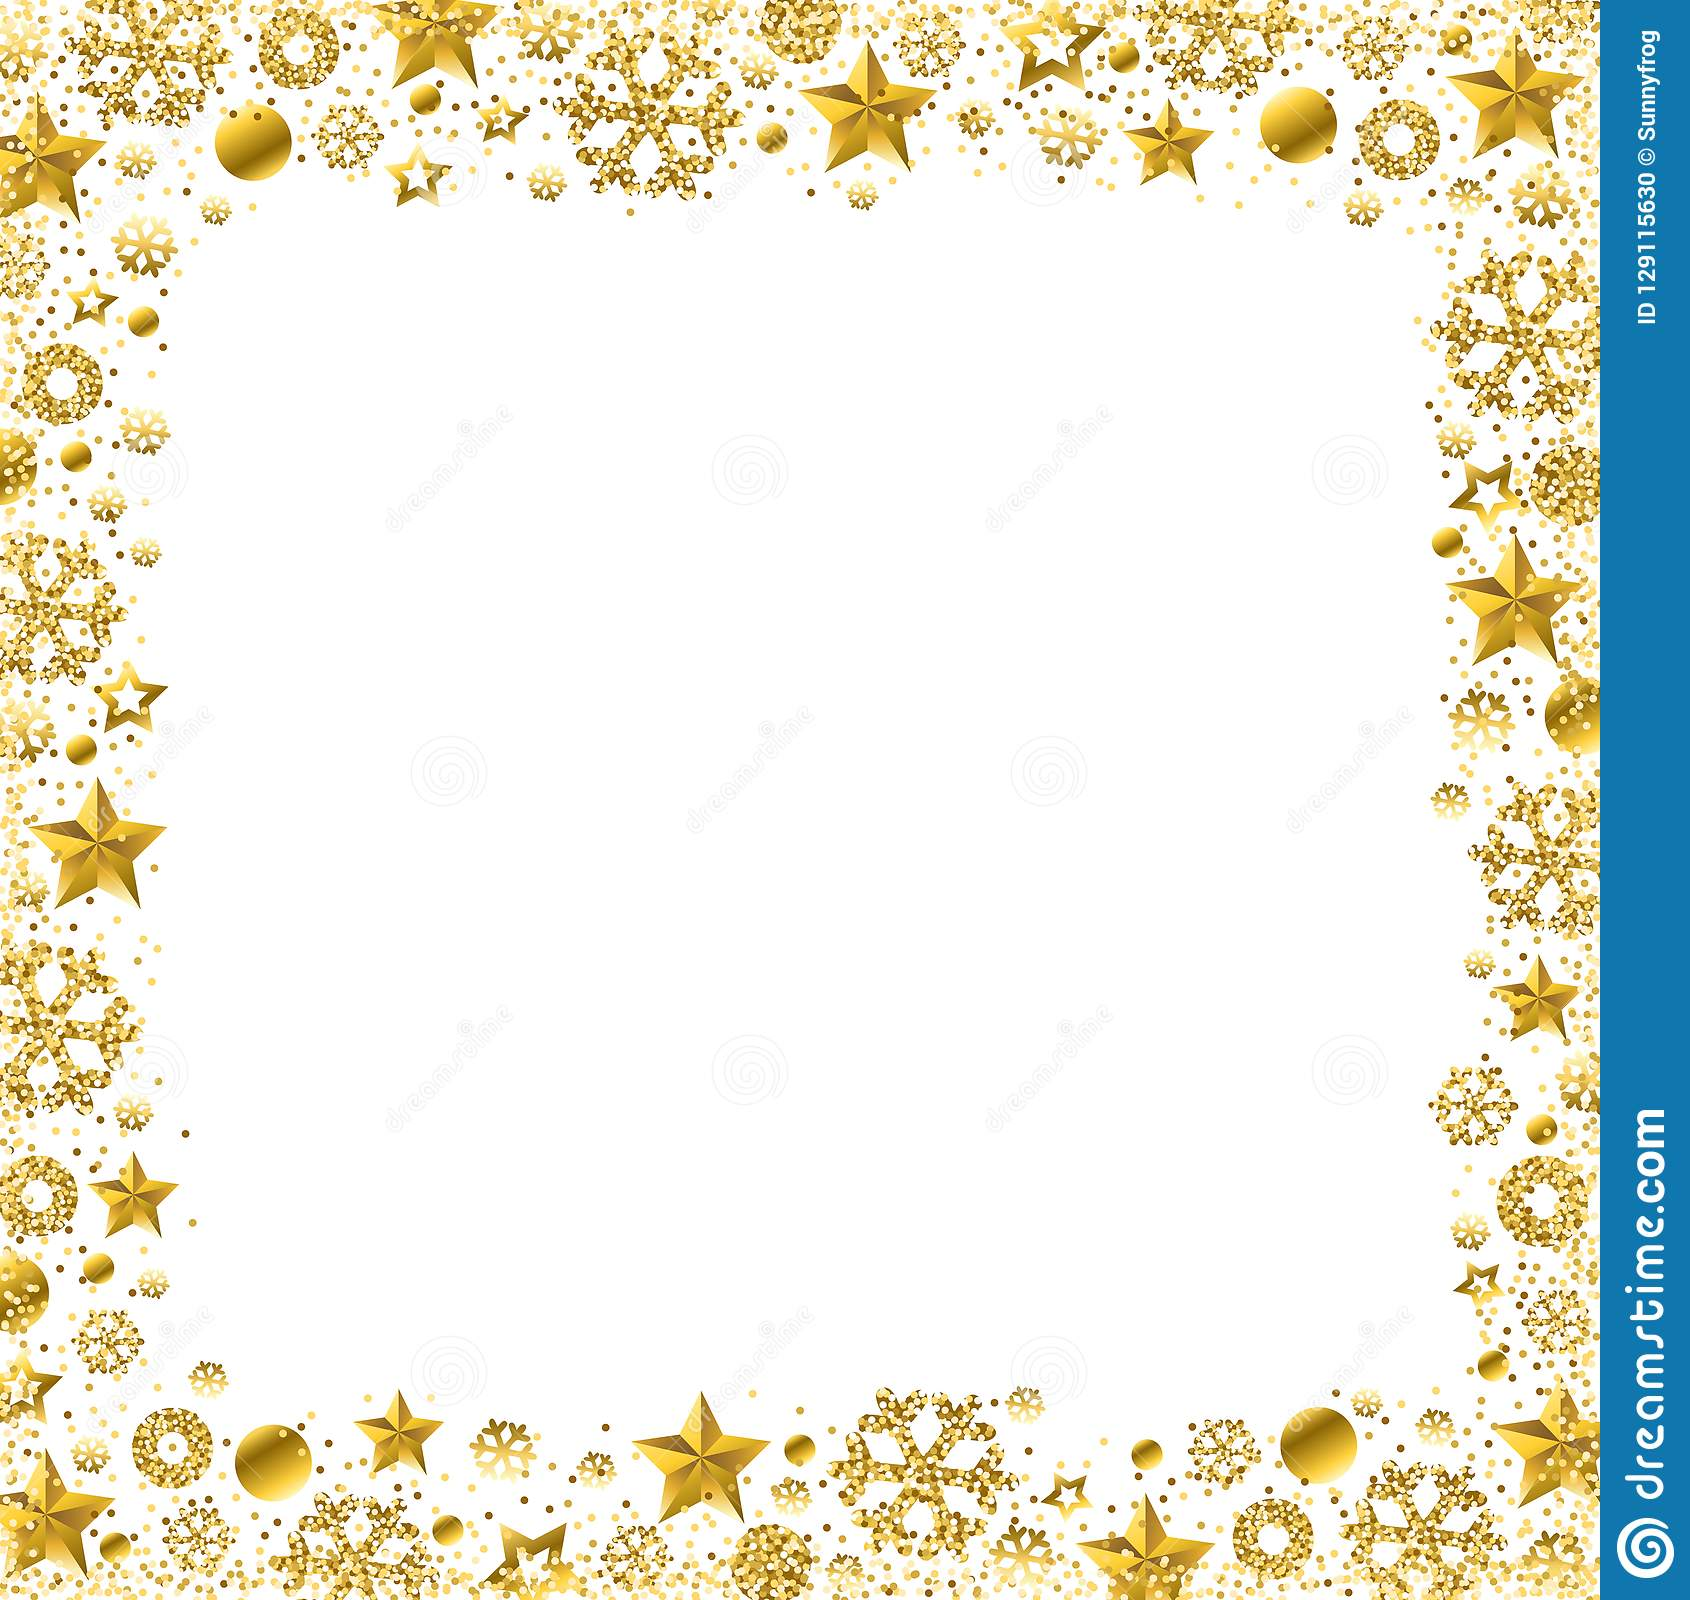 Christmas Card Border.White Christmas Card With Border Of Golden Glittering